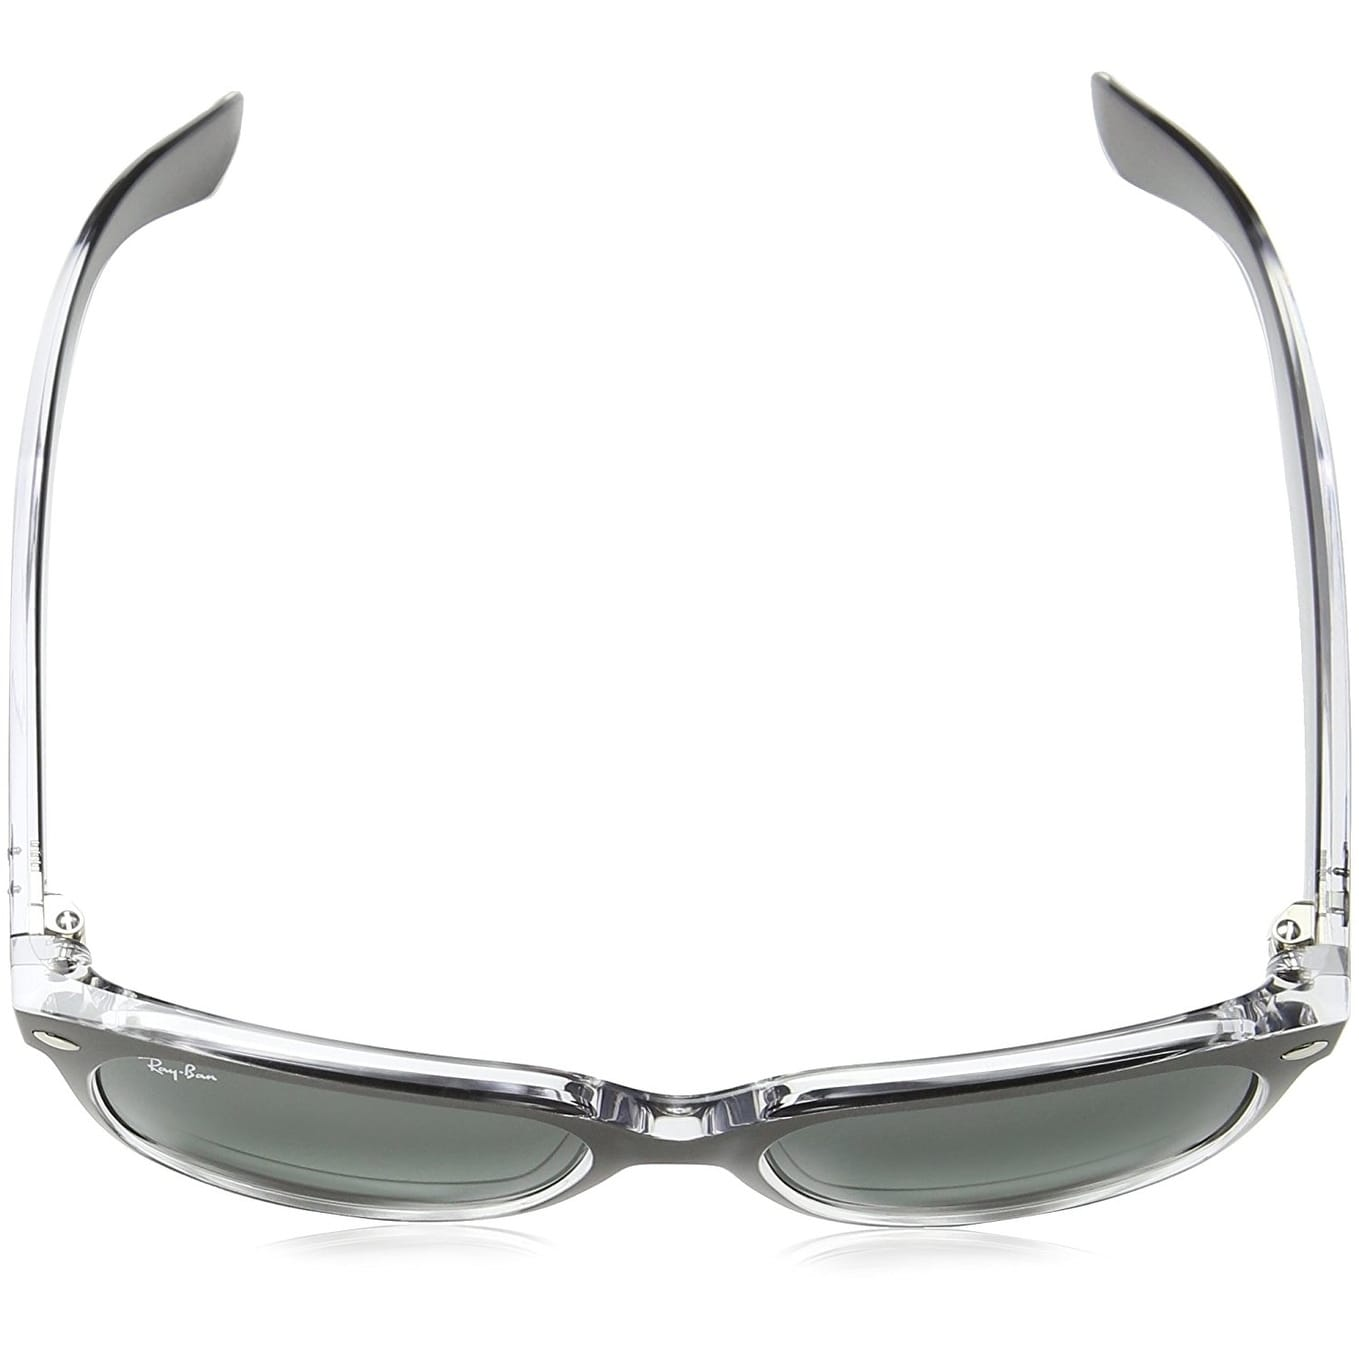 21d2d6f9ae Shop Ray-Ban Unisex RB2132 New Wayfarer Color Mix Gunmetal Clear Frame Grey  Gradient 55mm Lens Sunglasses - Free Shipping Today - Overstock - 17754455